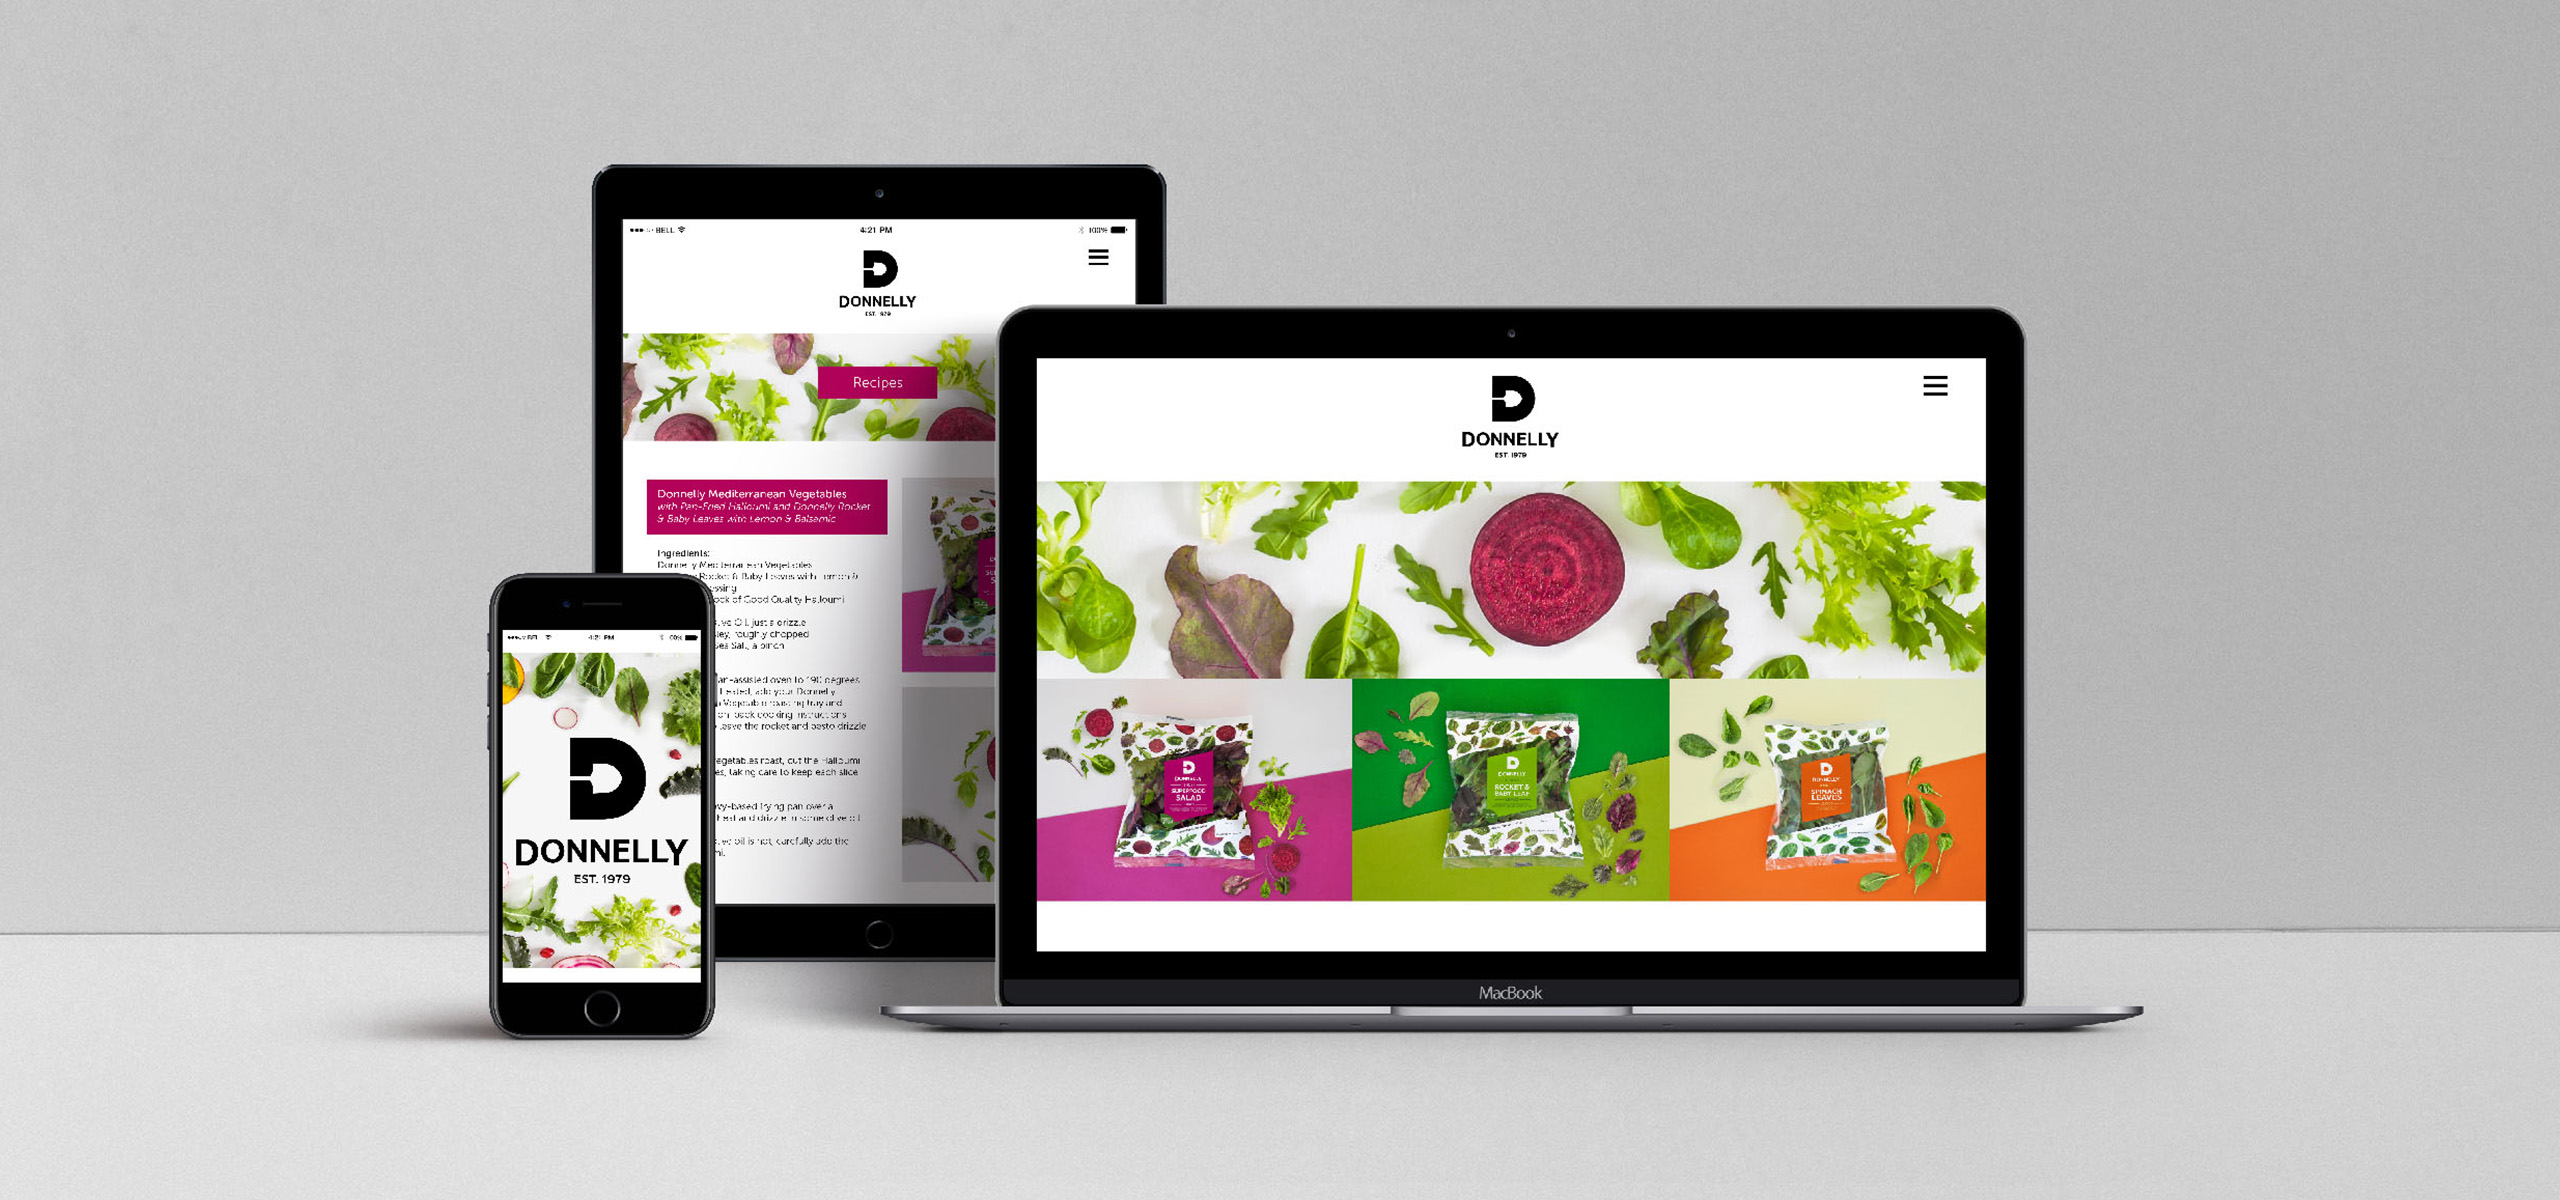 Website design for food brand Donnelly, designed by White Bear Studio